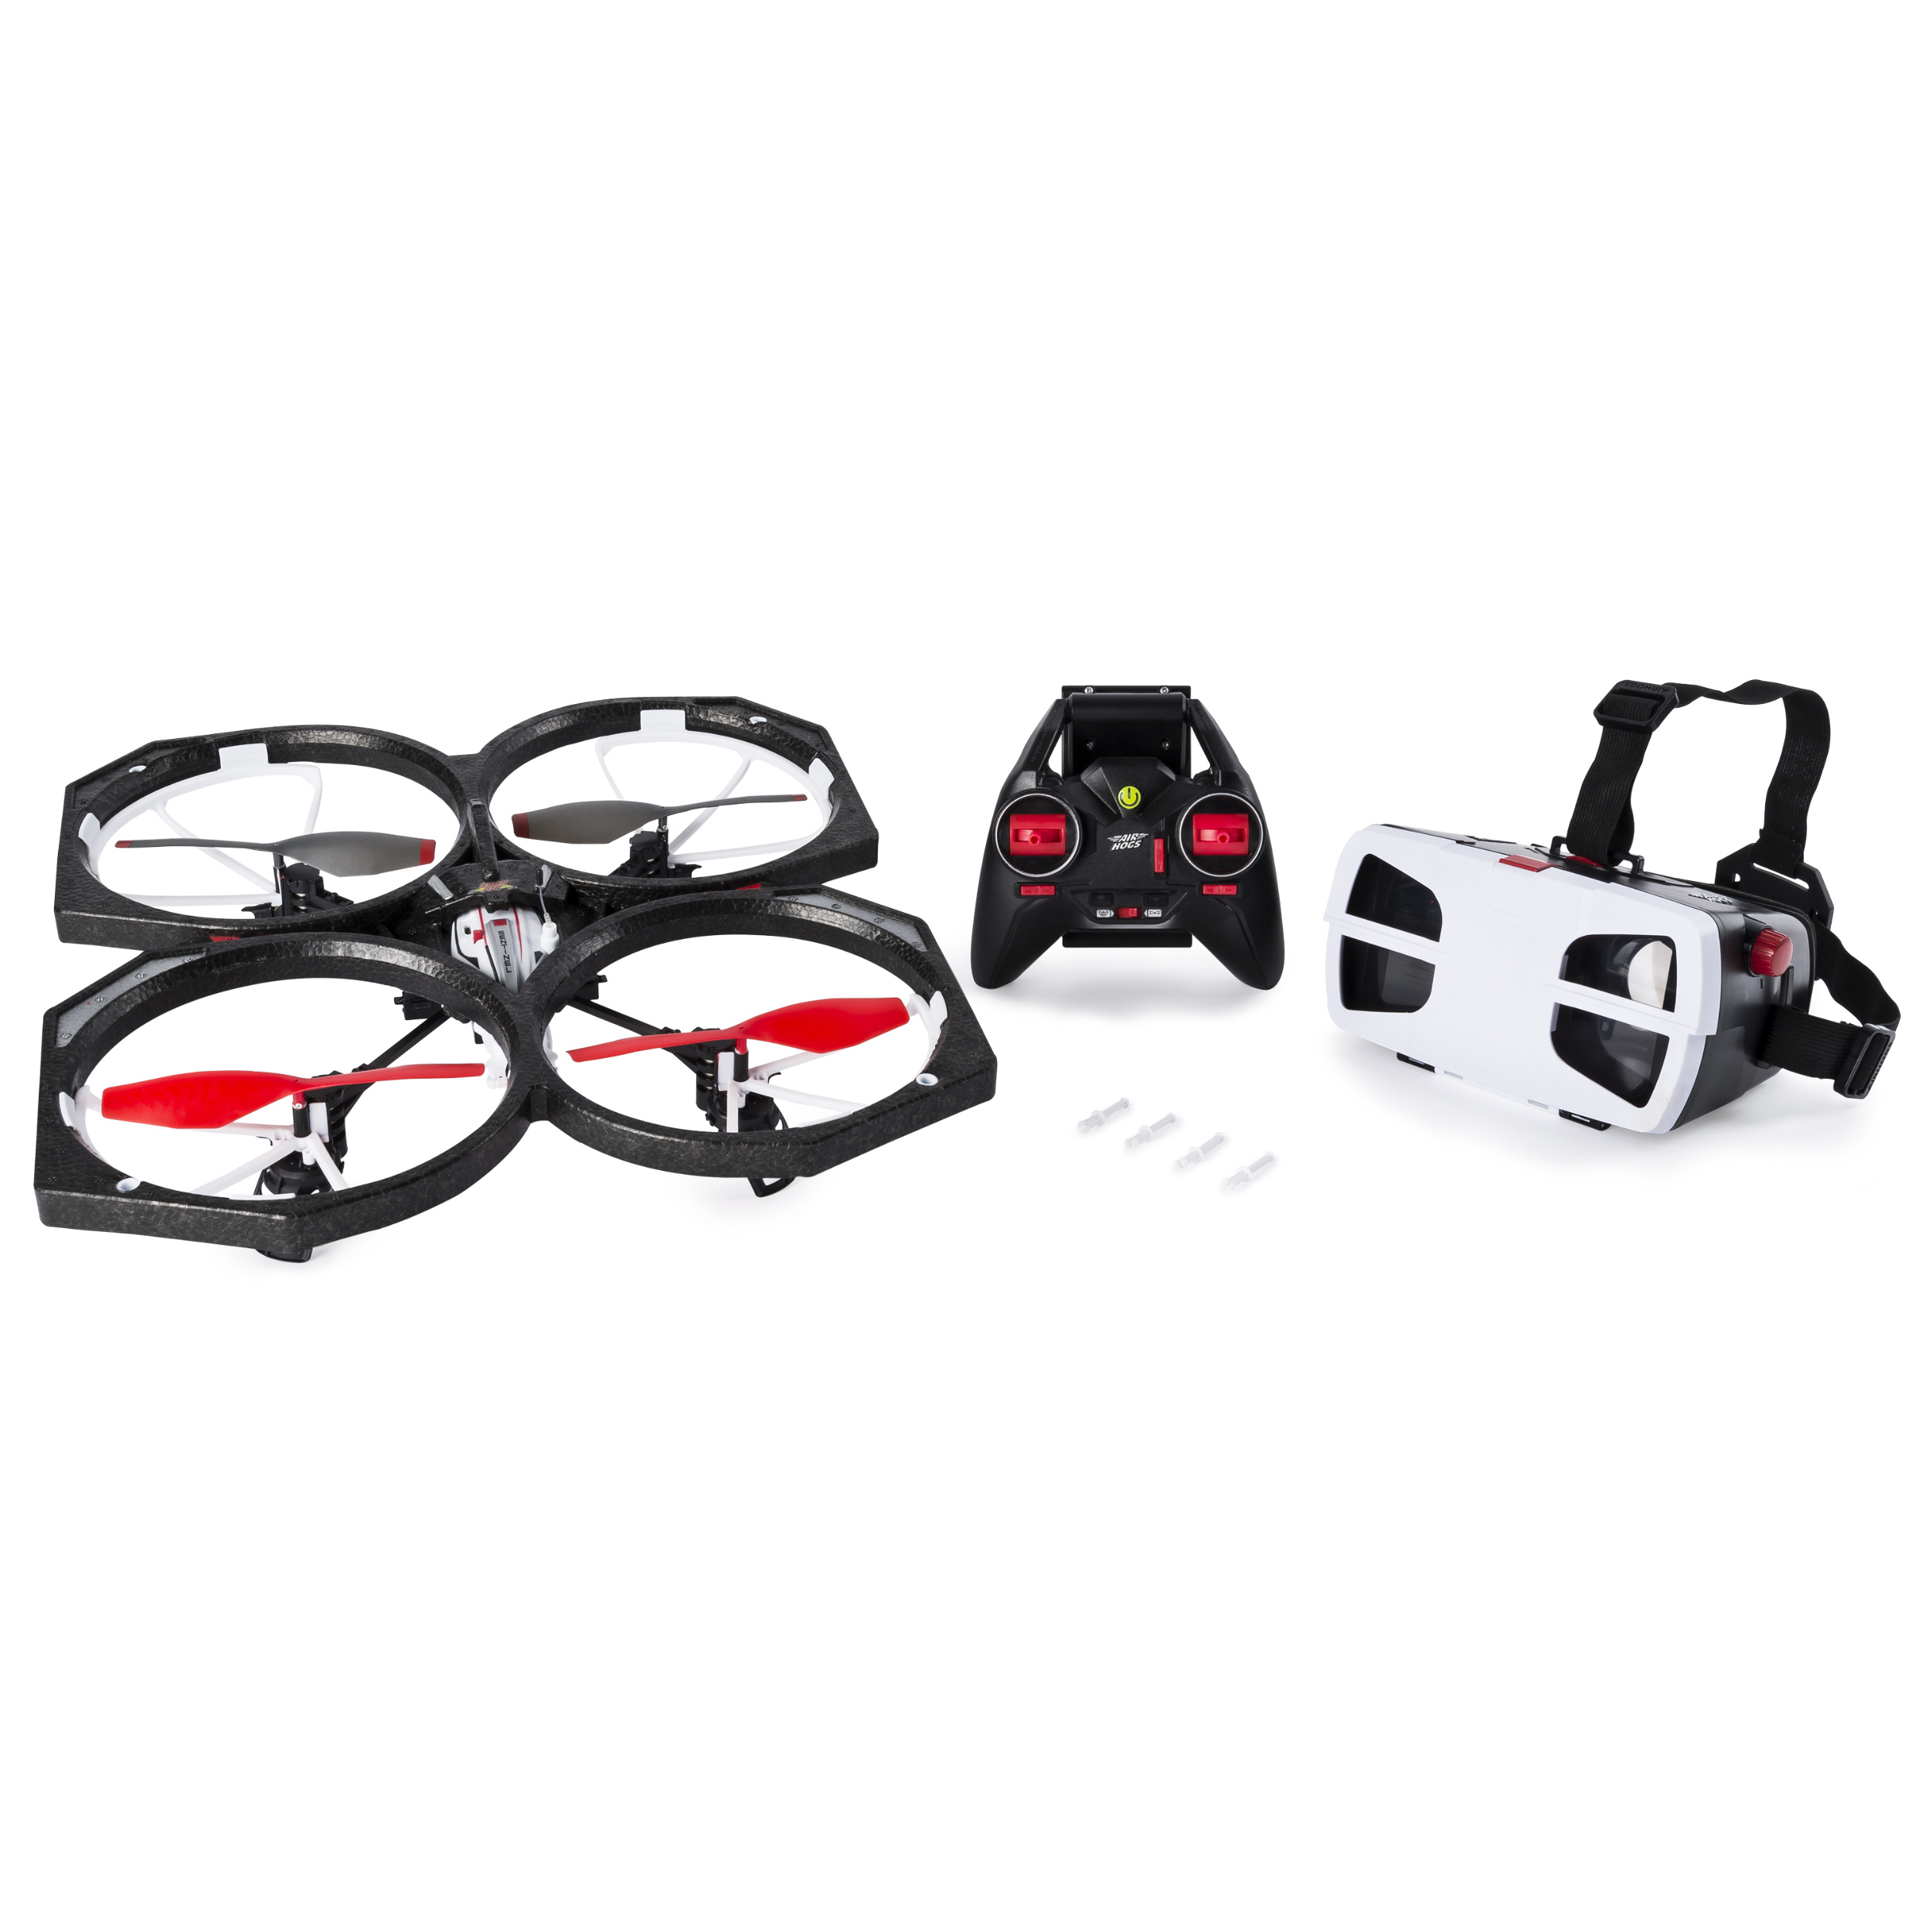 Air Hogs Helix Sentinel First Person View (FPV) HD 720p Video Drone with 4GB Micro SD Card... by Spin Master Ltd